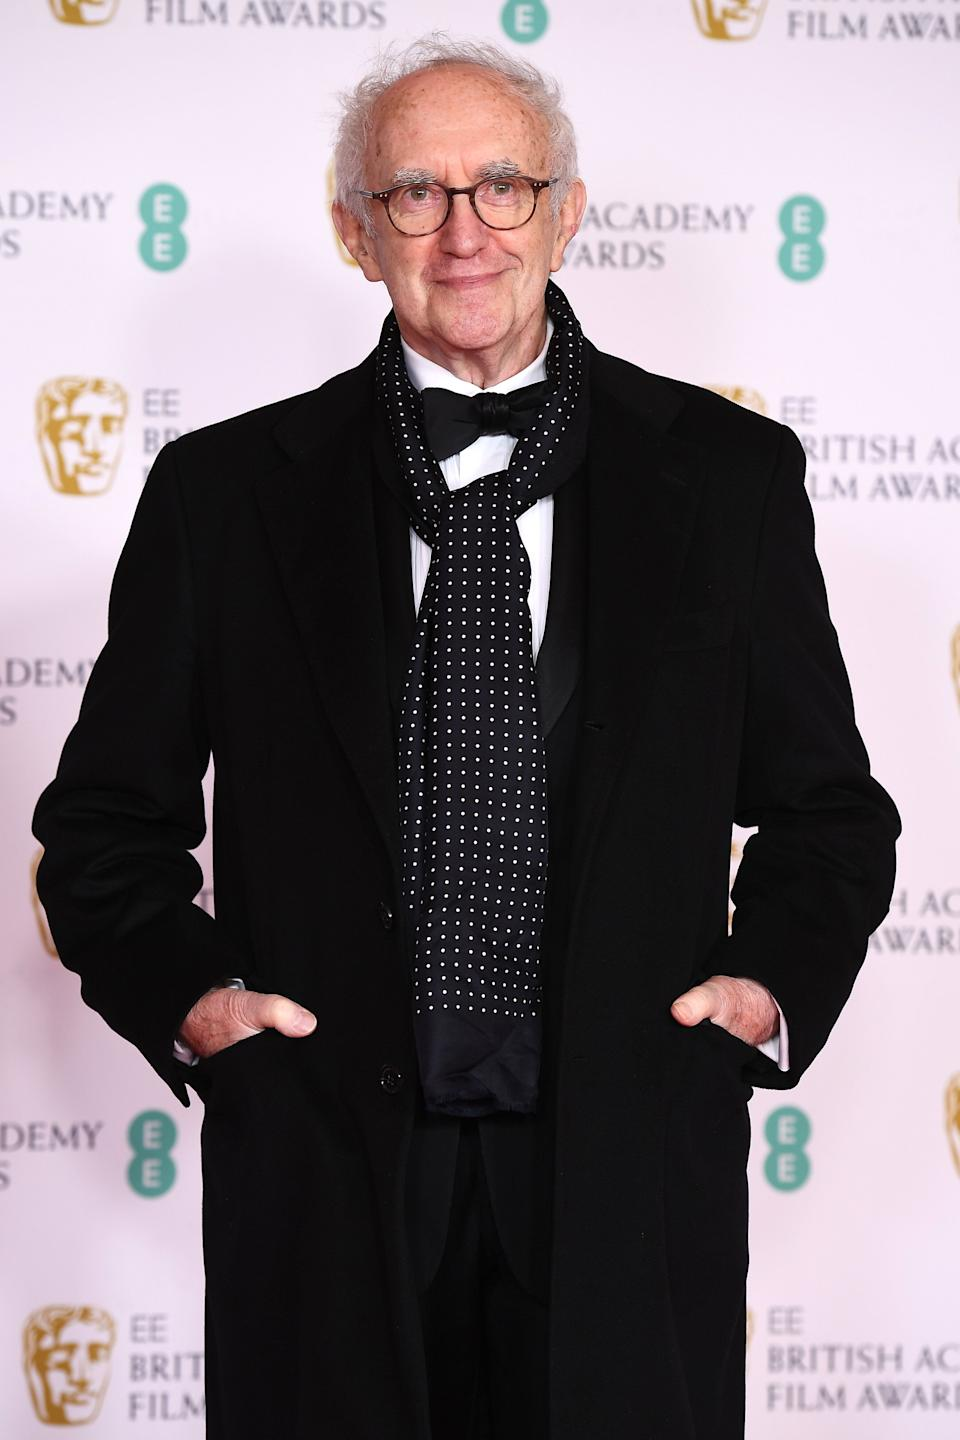 Jonathan Pryce pictured at the Baftas earlier this year (Photo: Jeff Spicer via Getty Images)